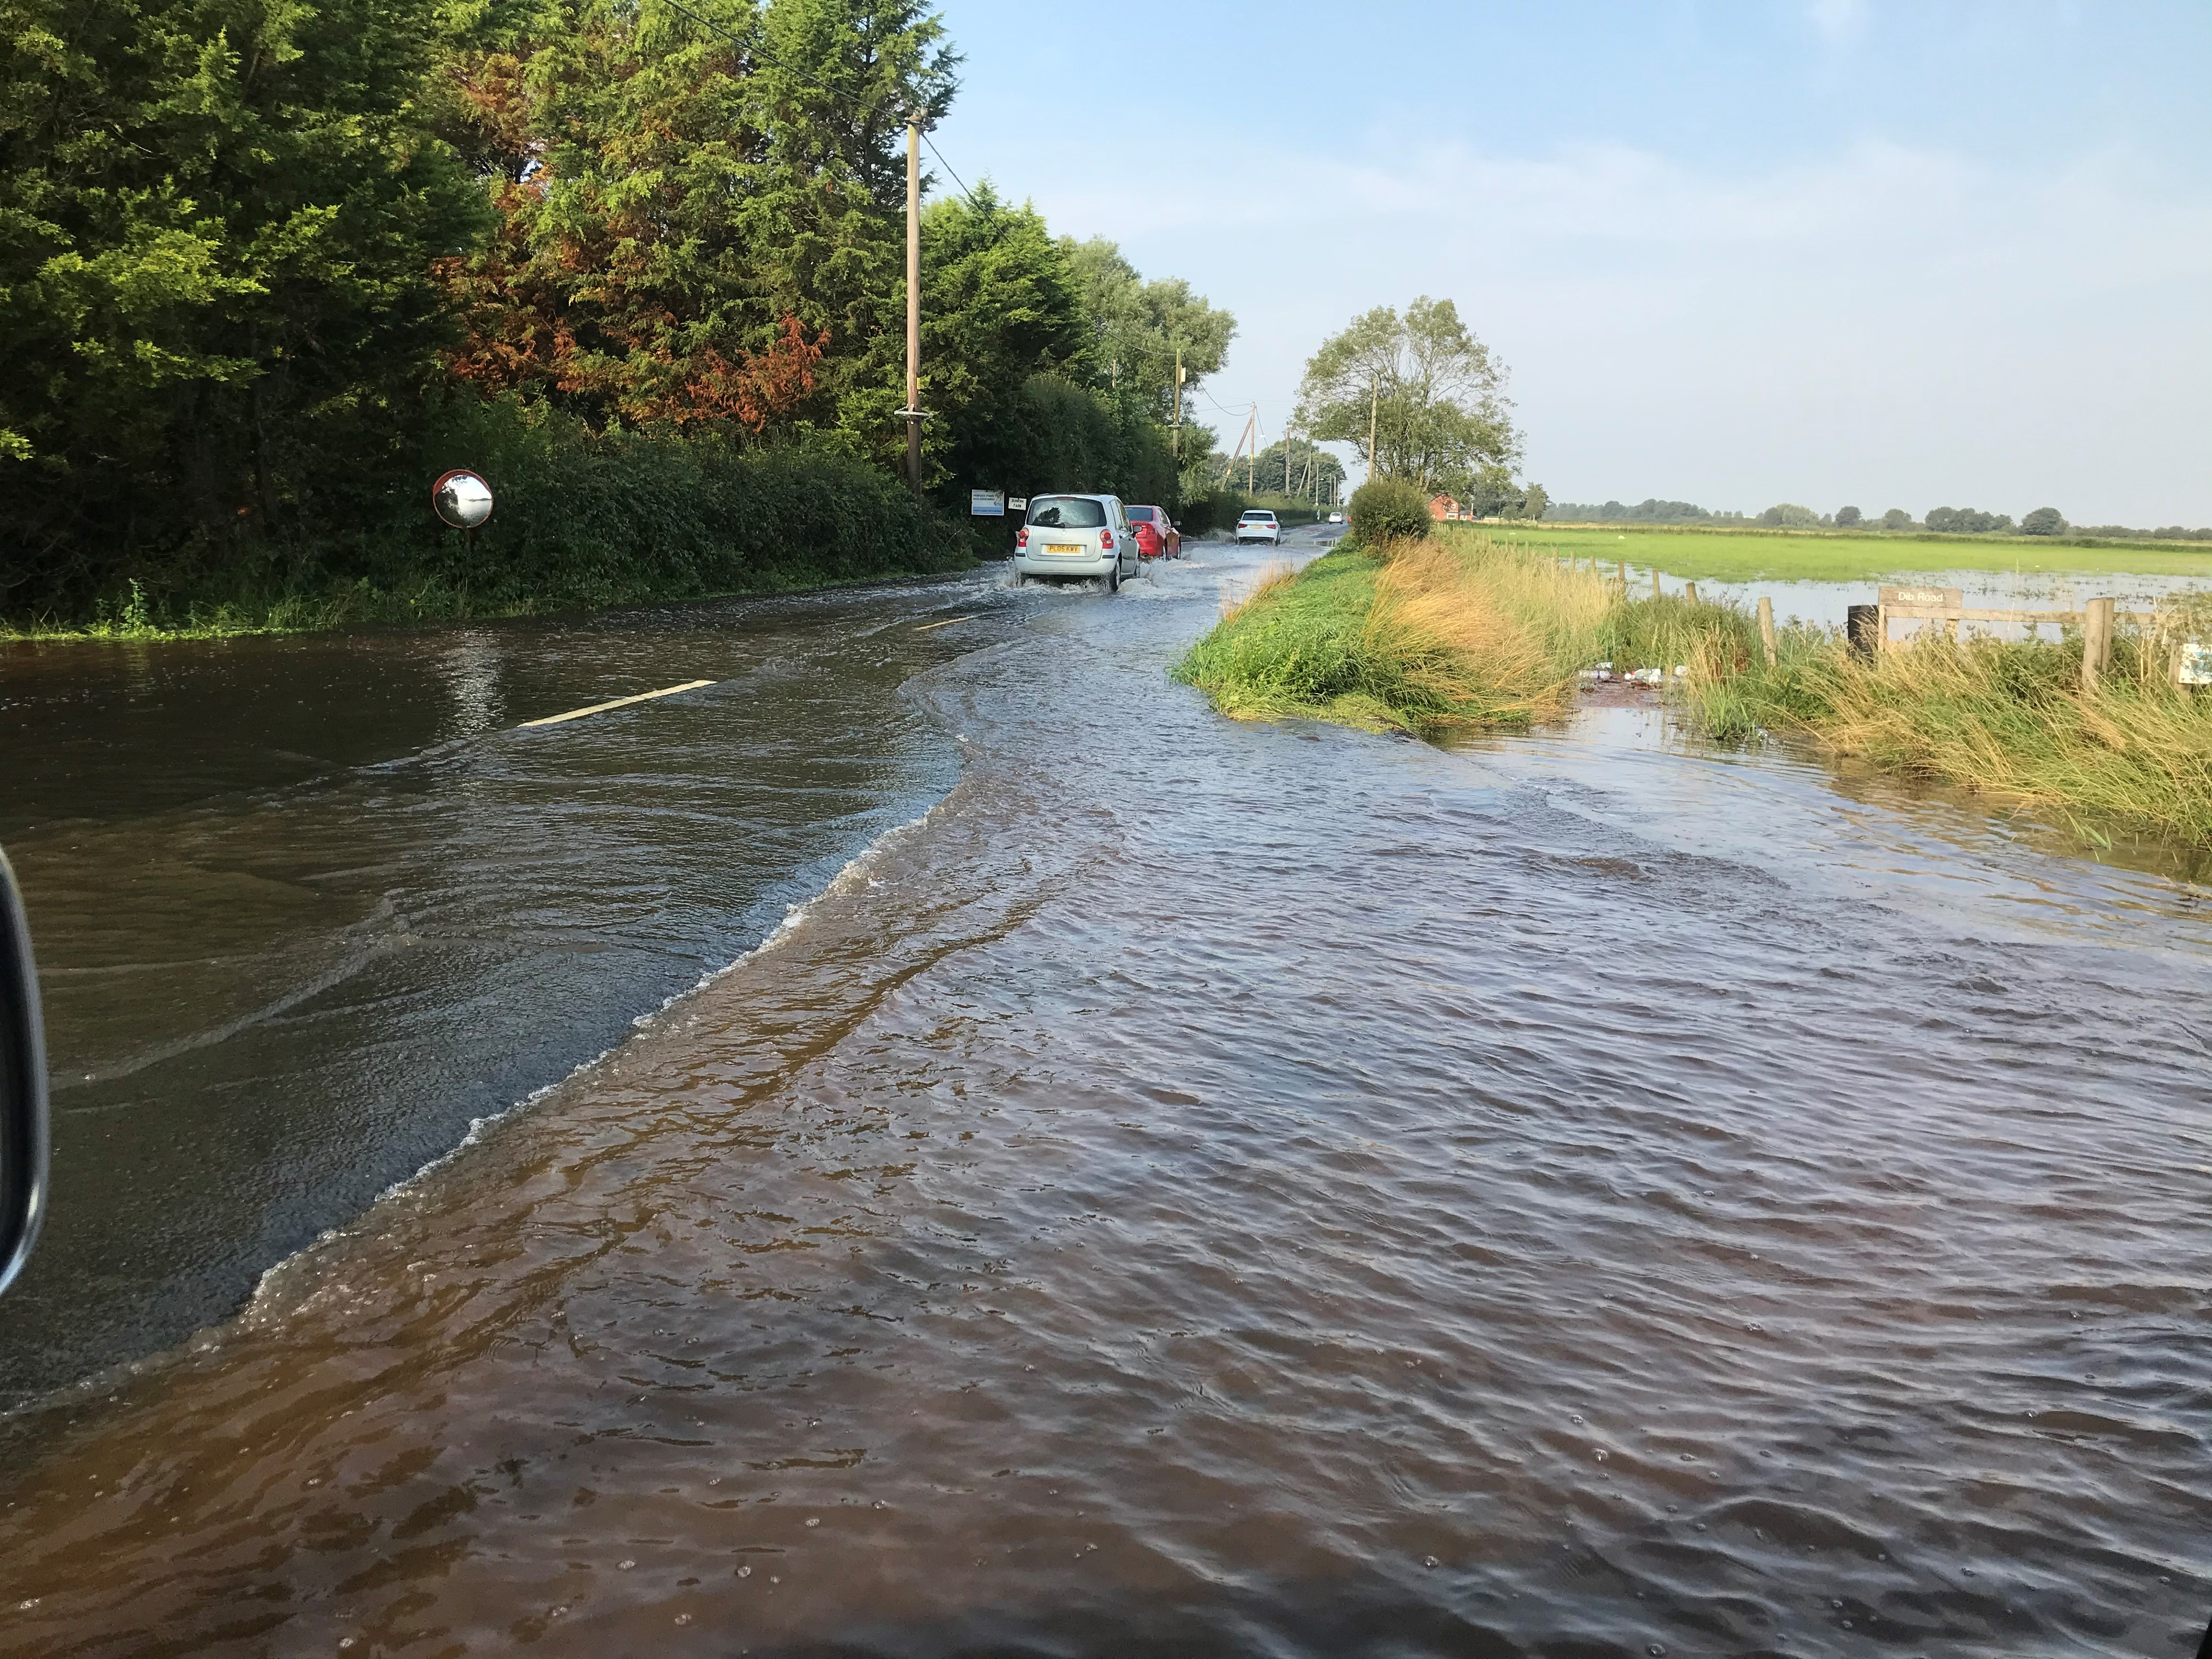 Council prepare for flooding issues in West Lancs